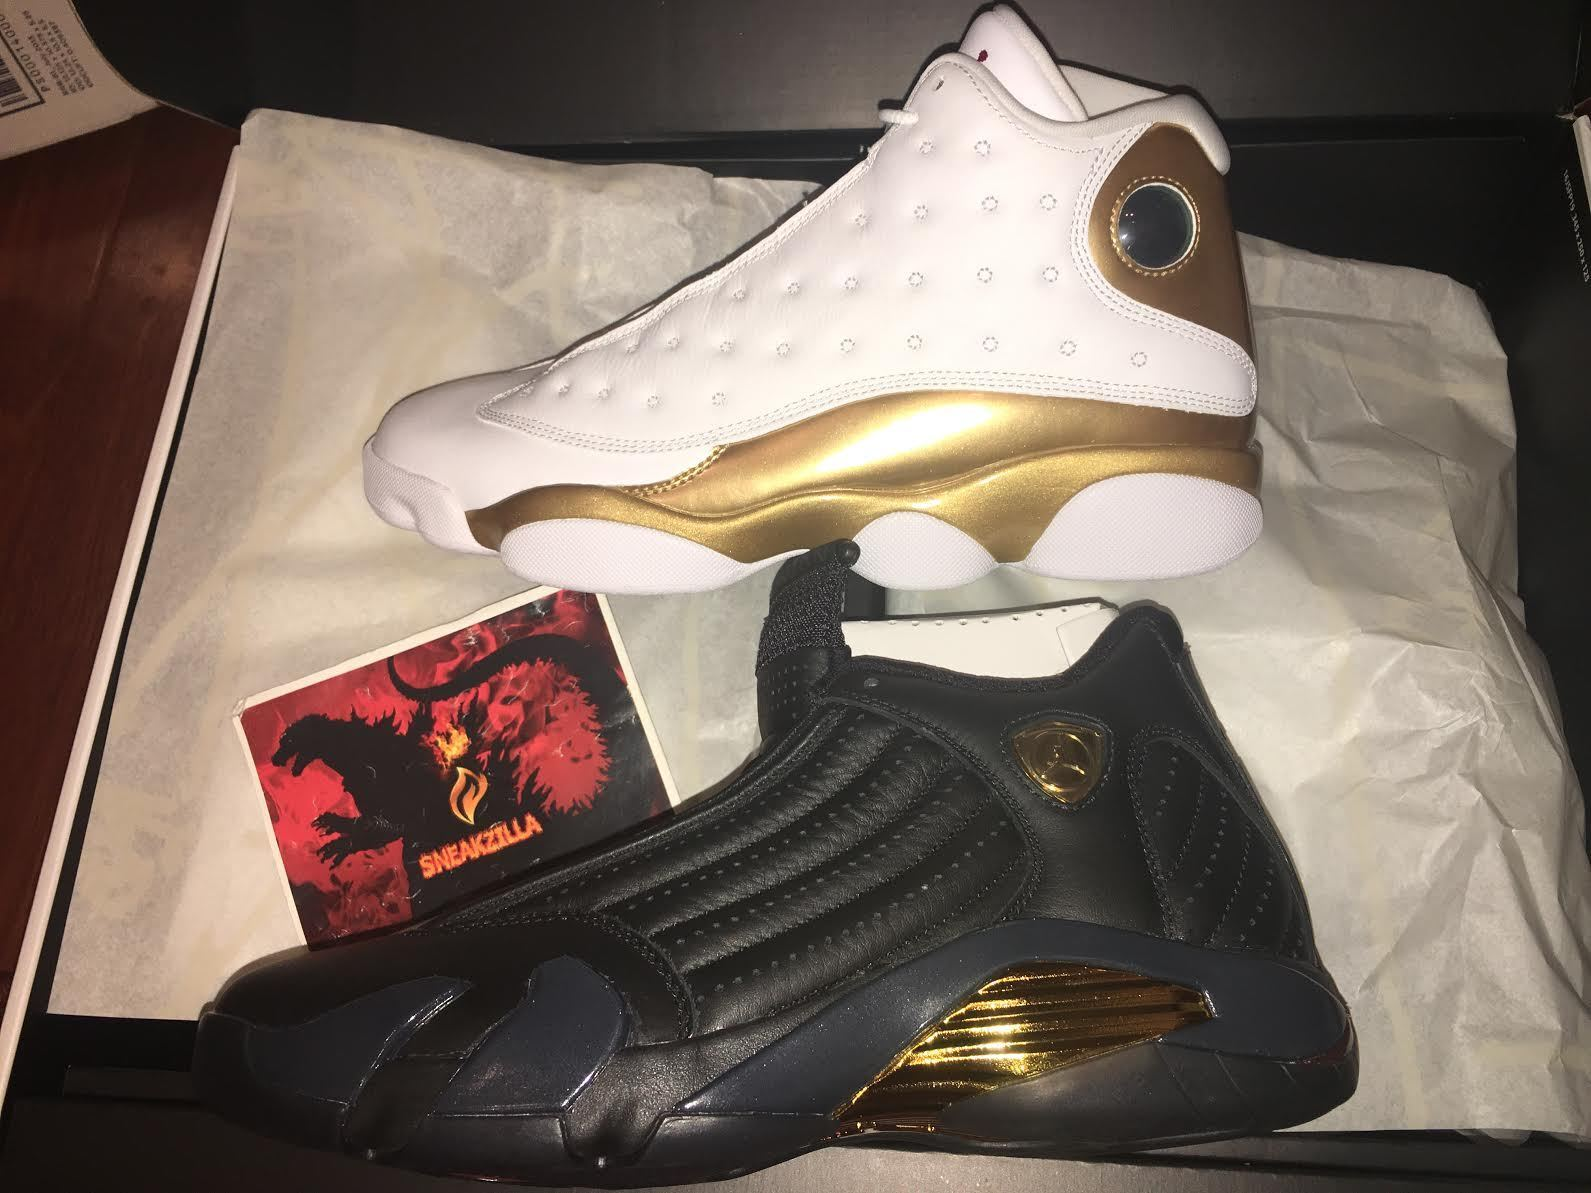 Nike Air Jordan Retro 13 14 DMP Last Shot Finals Pack 897563-900 Gold 9.5-10.5